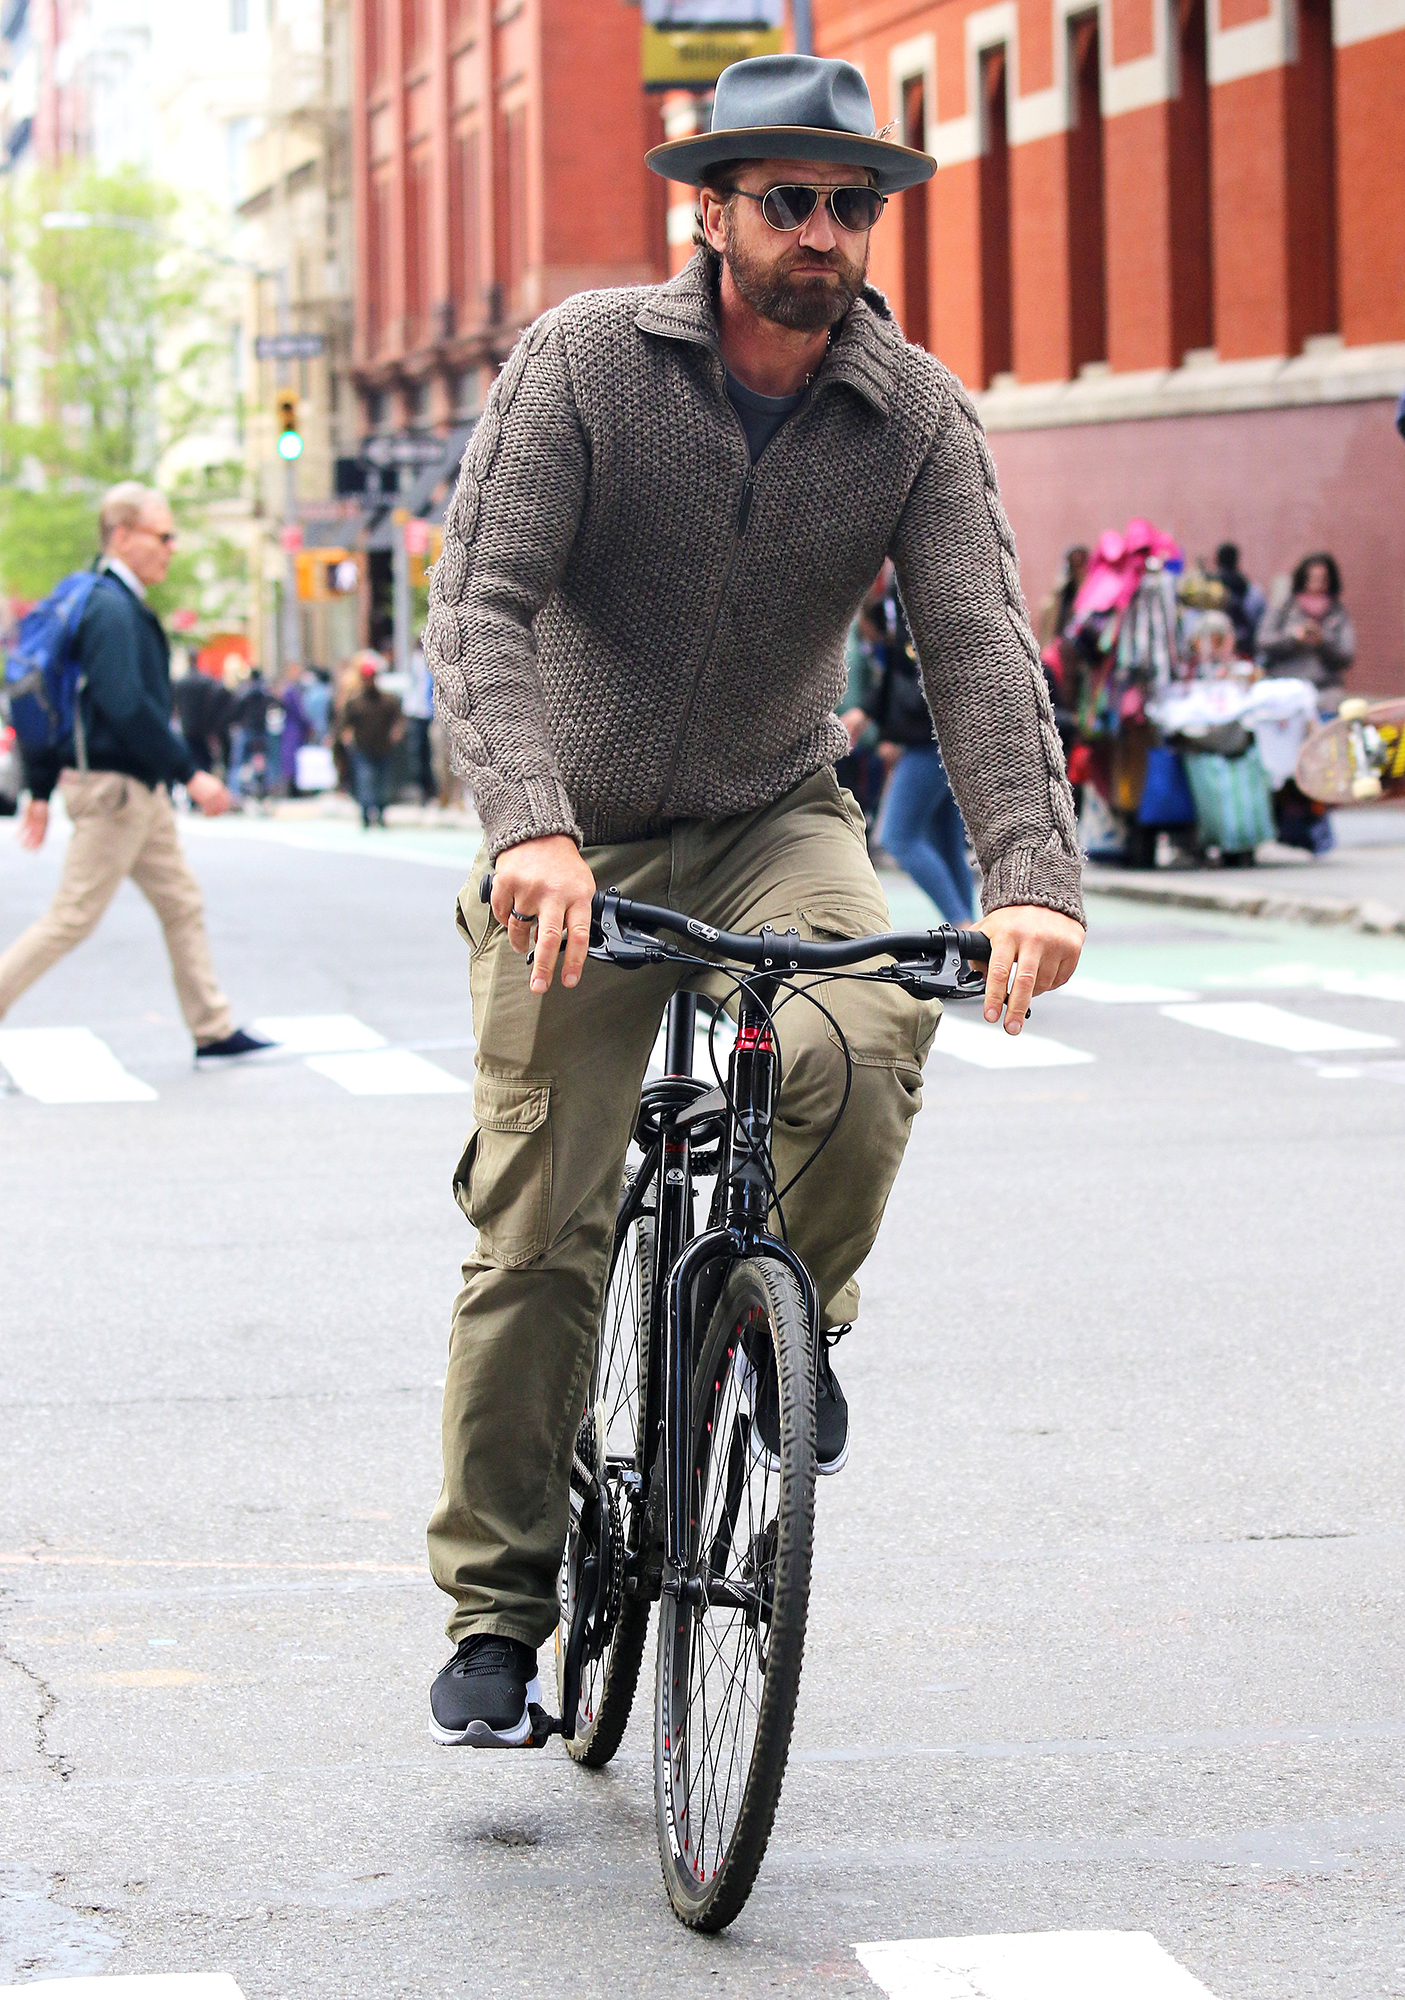 Gerard Butler Bike - On April 27, 2019, the actor wore a fisherman's sweater and cargo pants as he steered his way through the streets of downtown NYC.